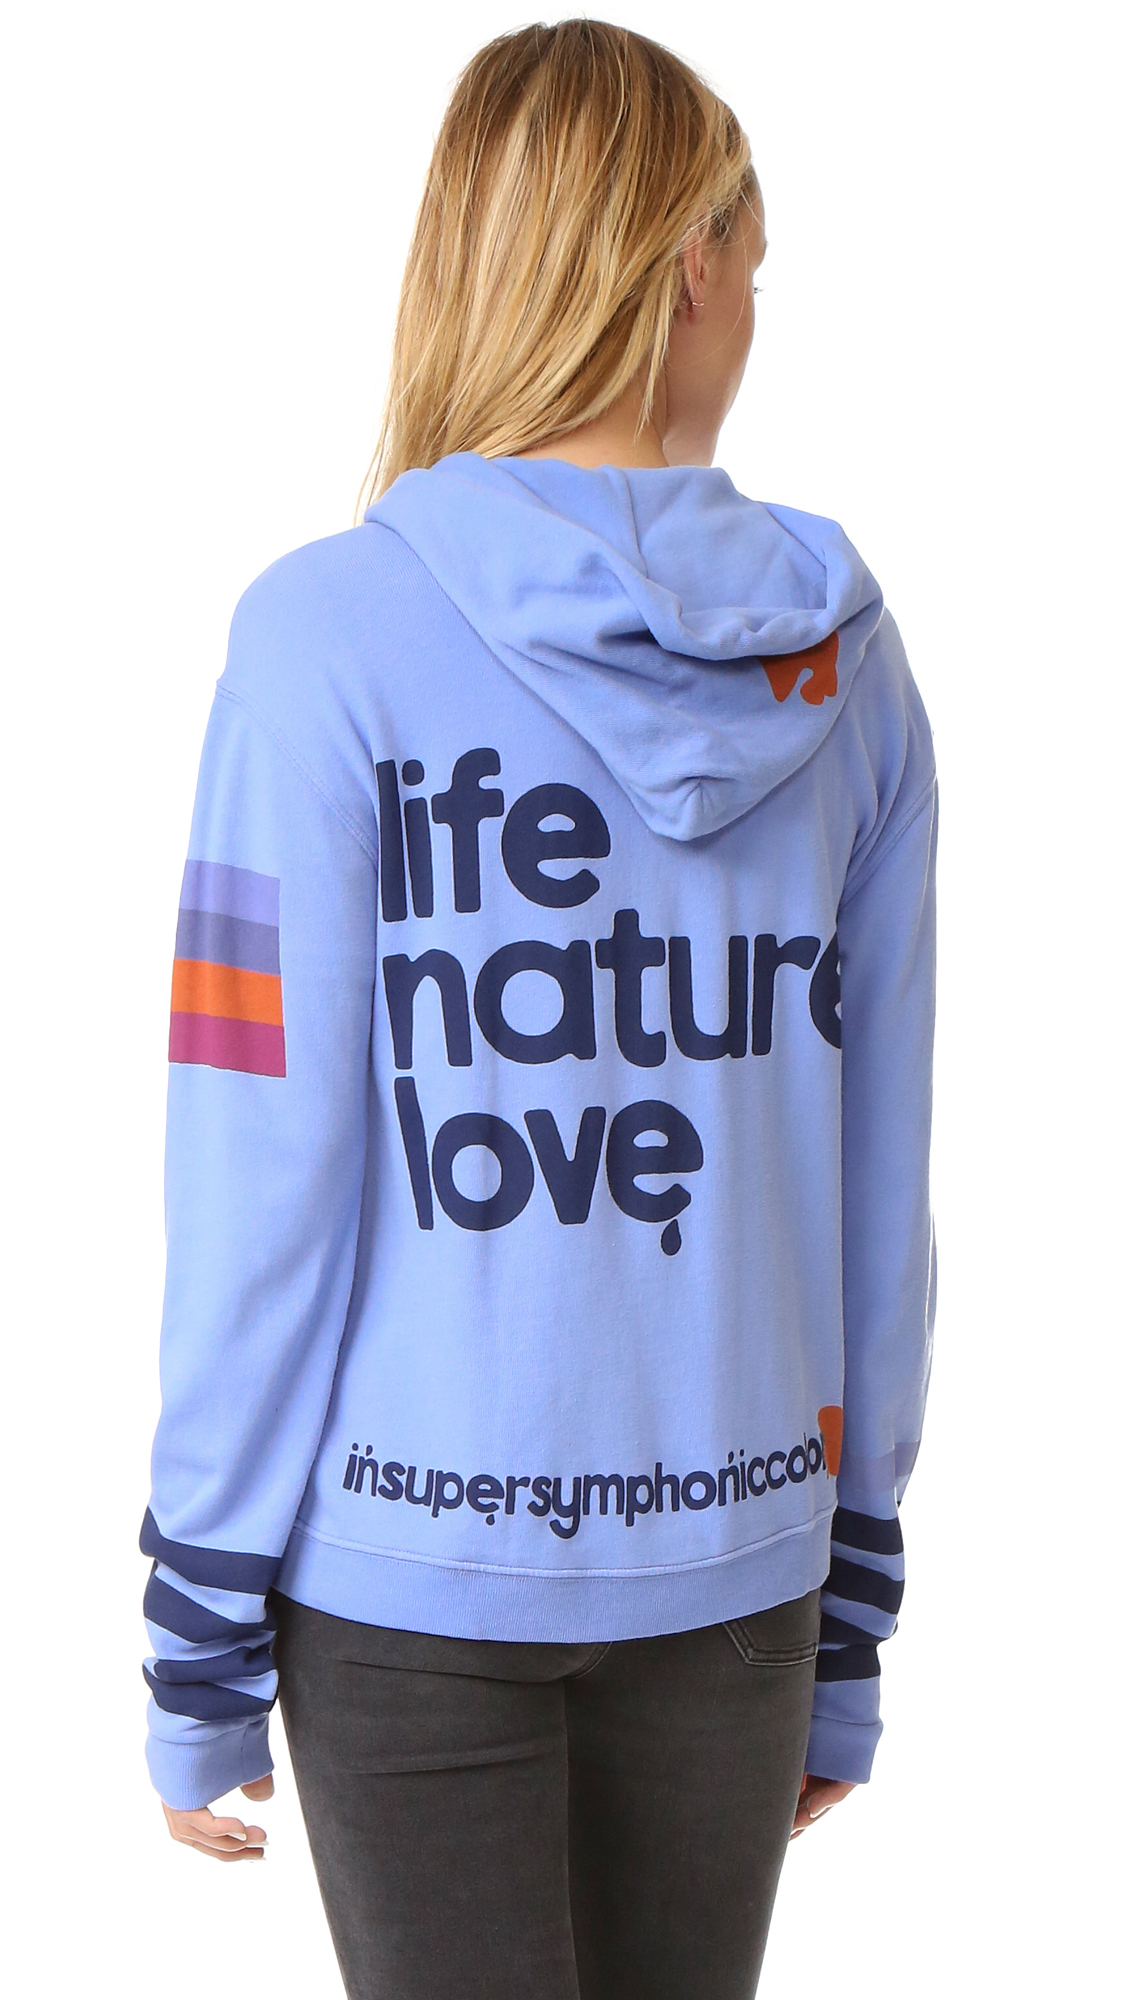 Text and bold graphics lend a signature street style look to this super soft FREECITY hooded sweatshirt. Covered front zip closure. Pouch hip pockets. Fabric: Fleece jersey. 100% cotton. Wash cold. Imported, Peru. Measurements Length: 23.5in / 60cm,